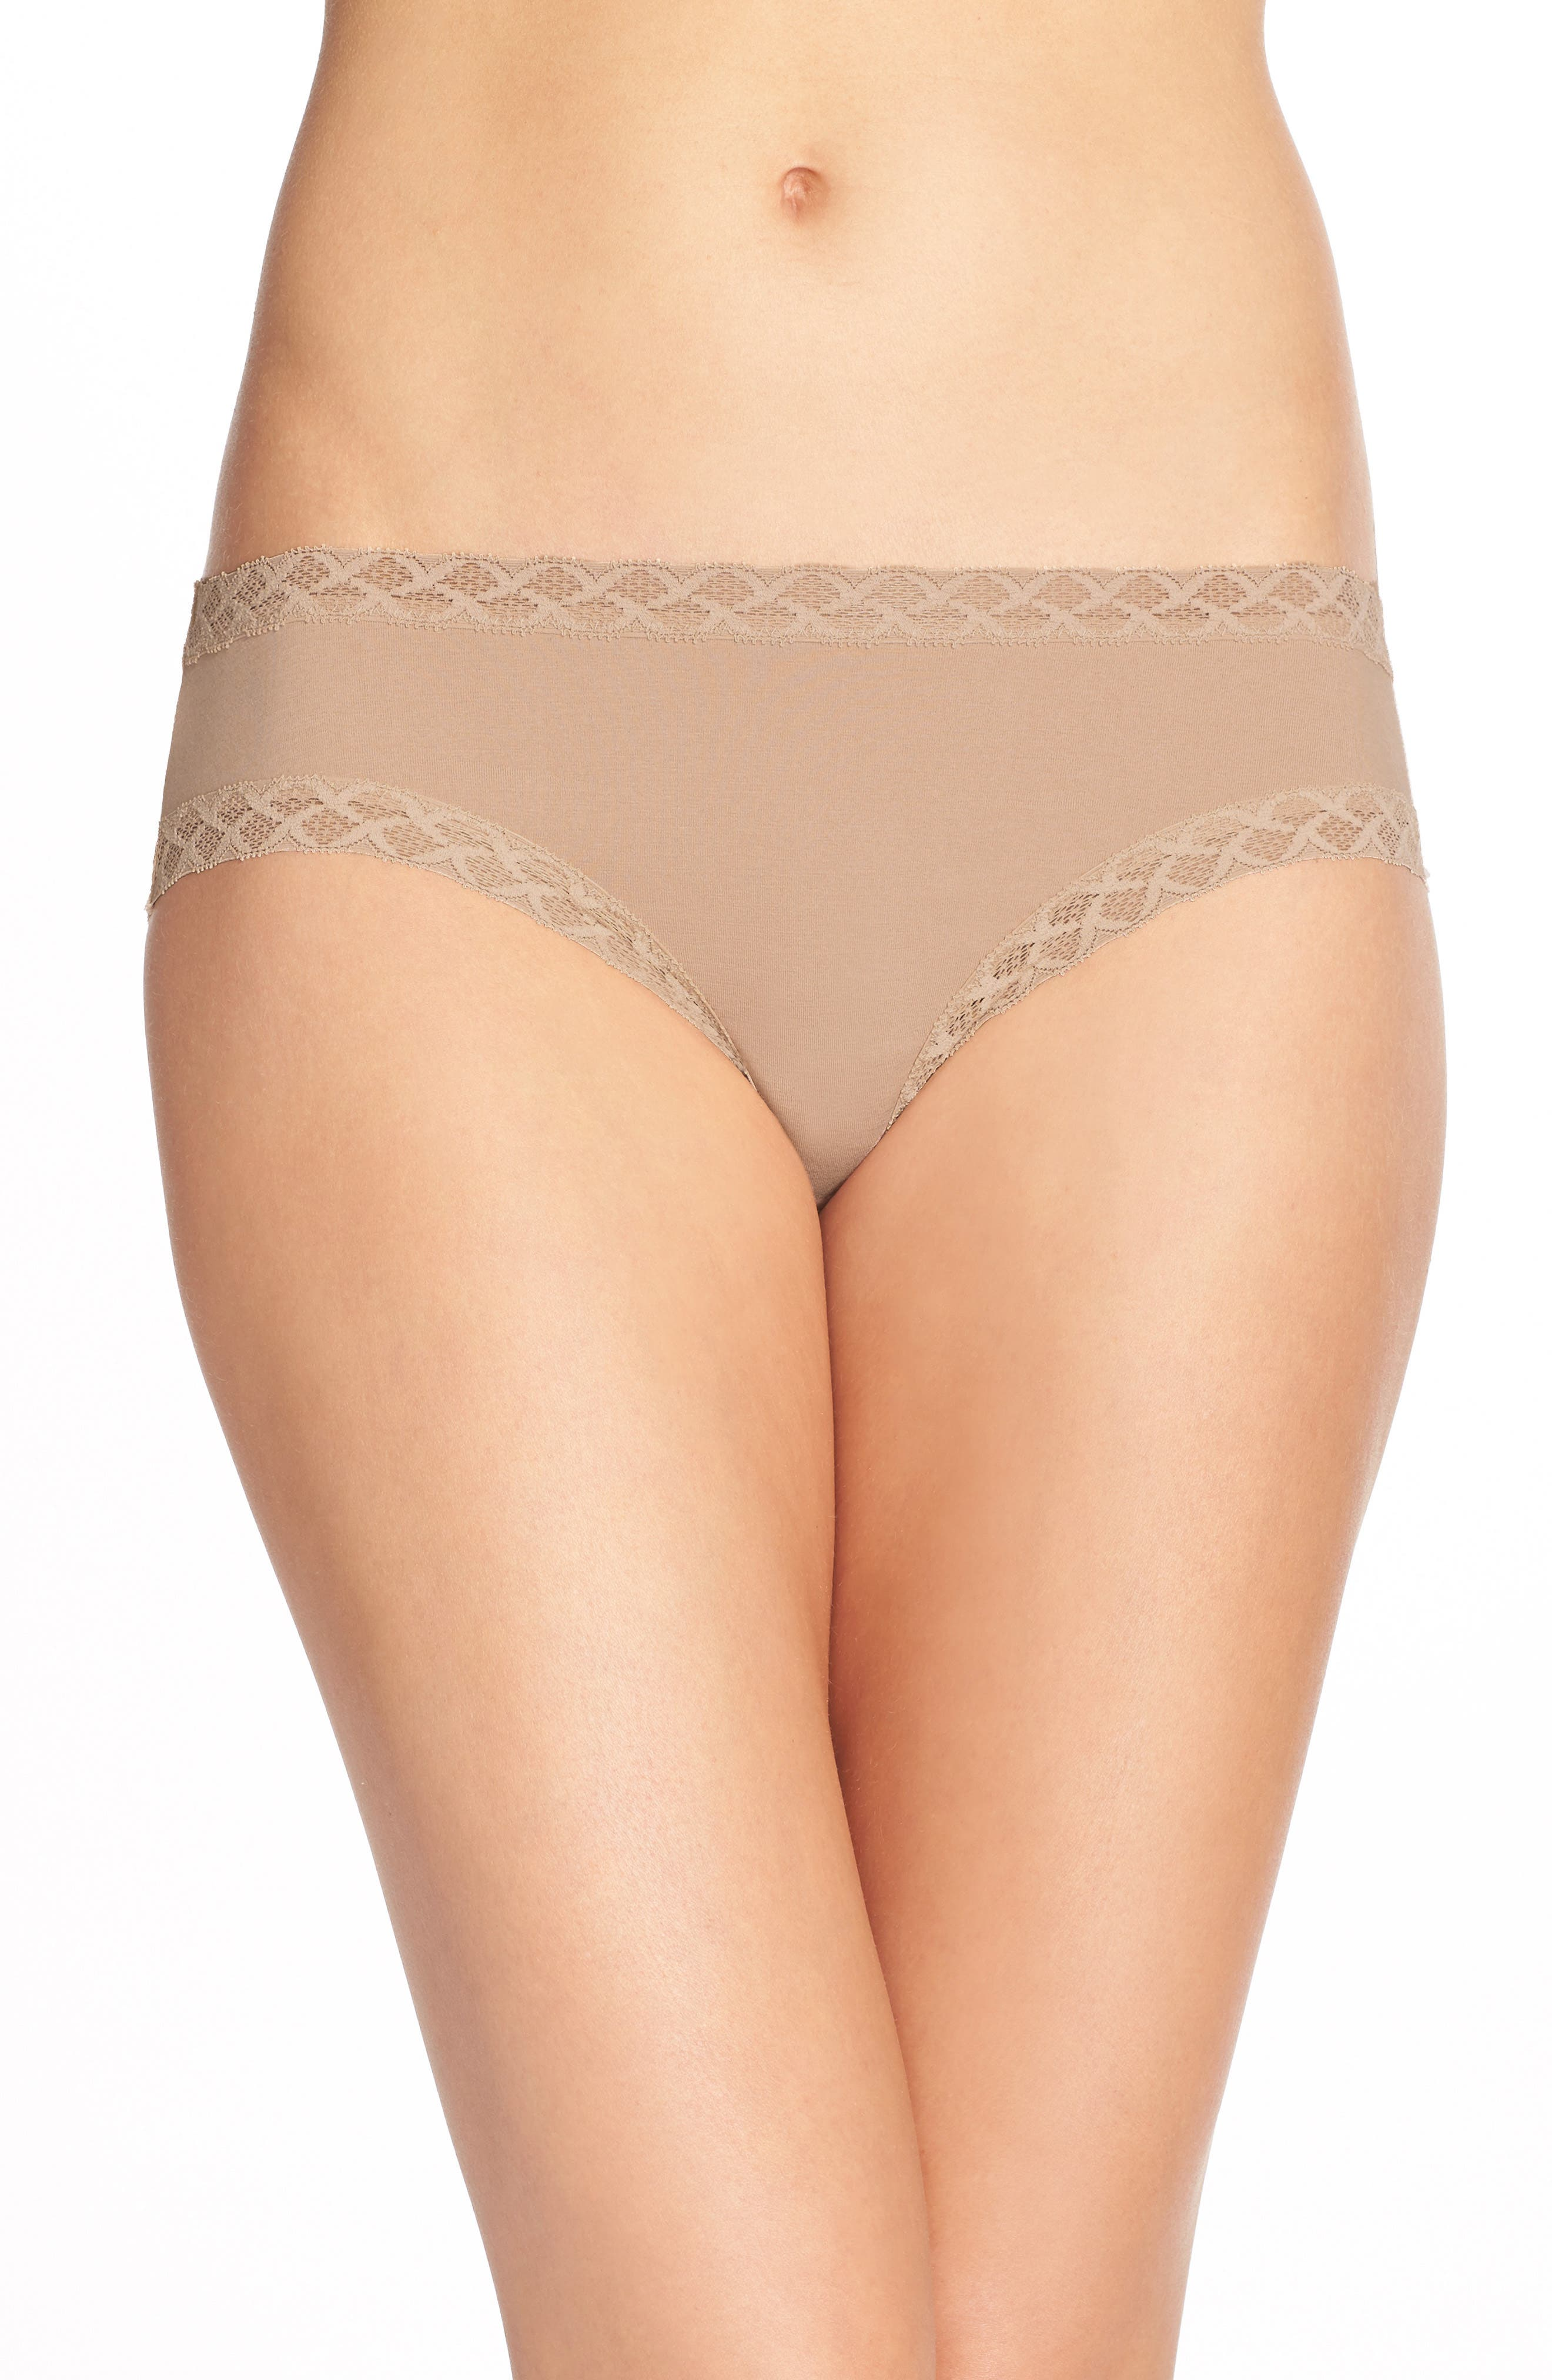 Bliss Cotton Girl Briefs,                             Main thumbnail 1, color,                             CAFE